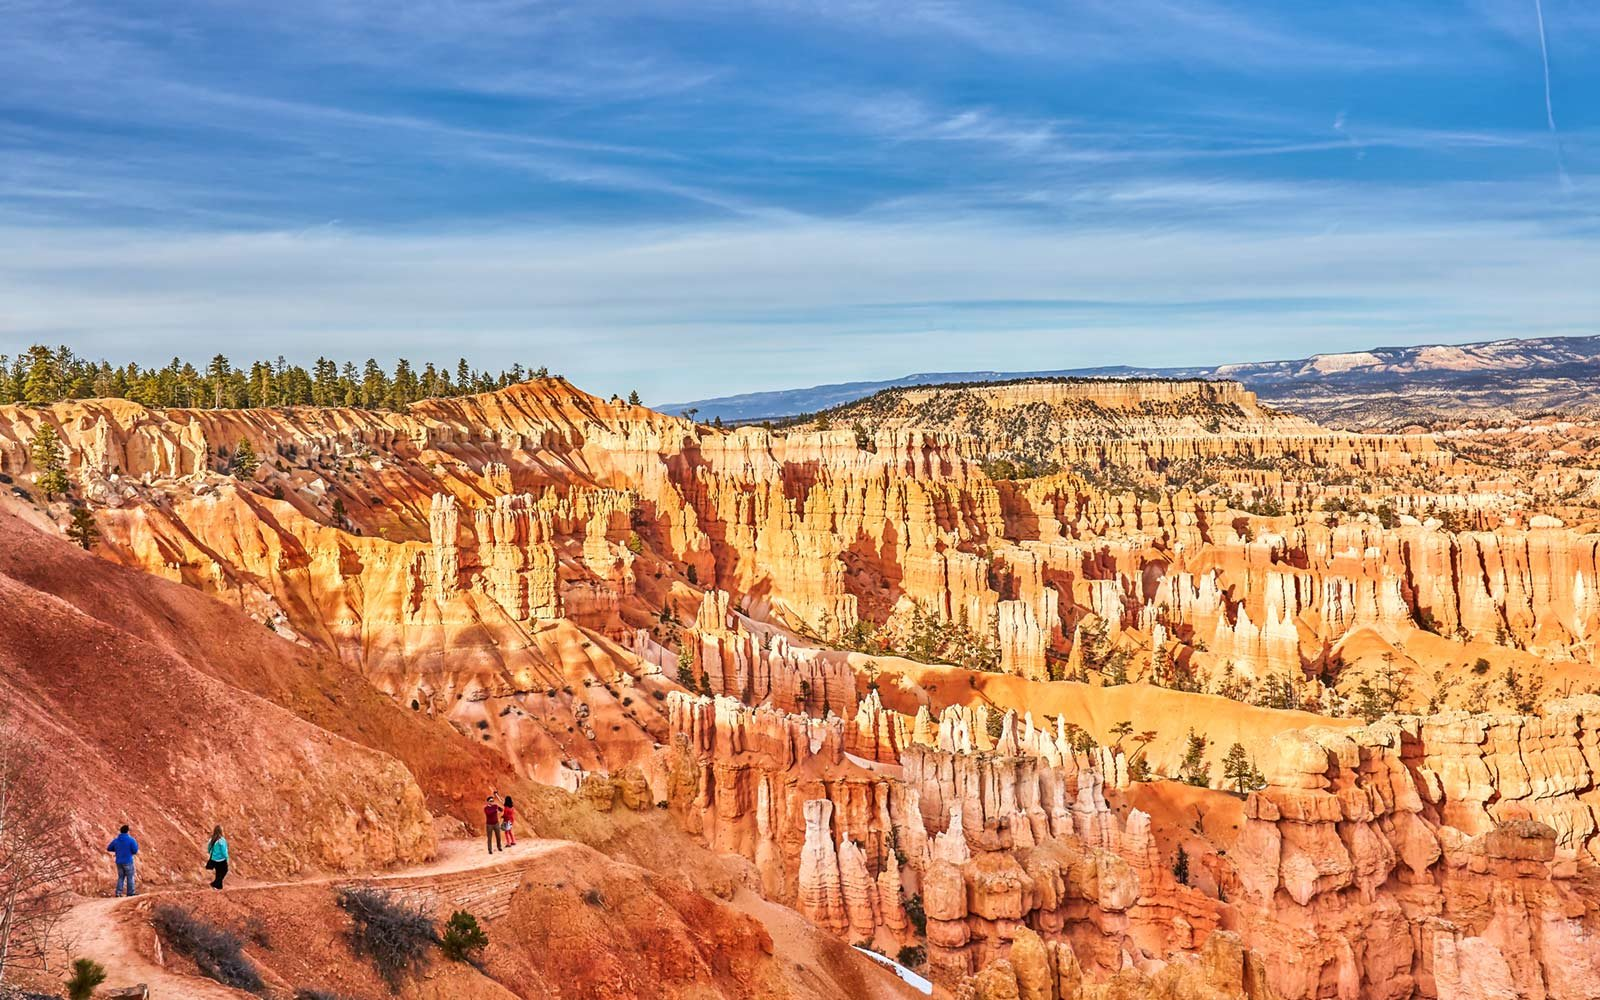 6. Bryce Canyon National Park